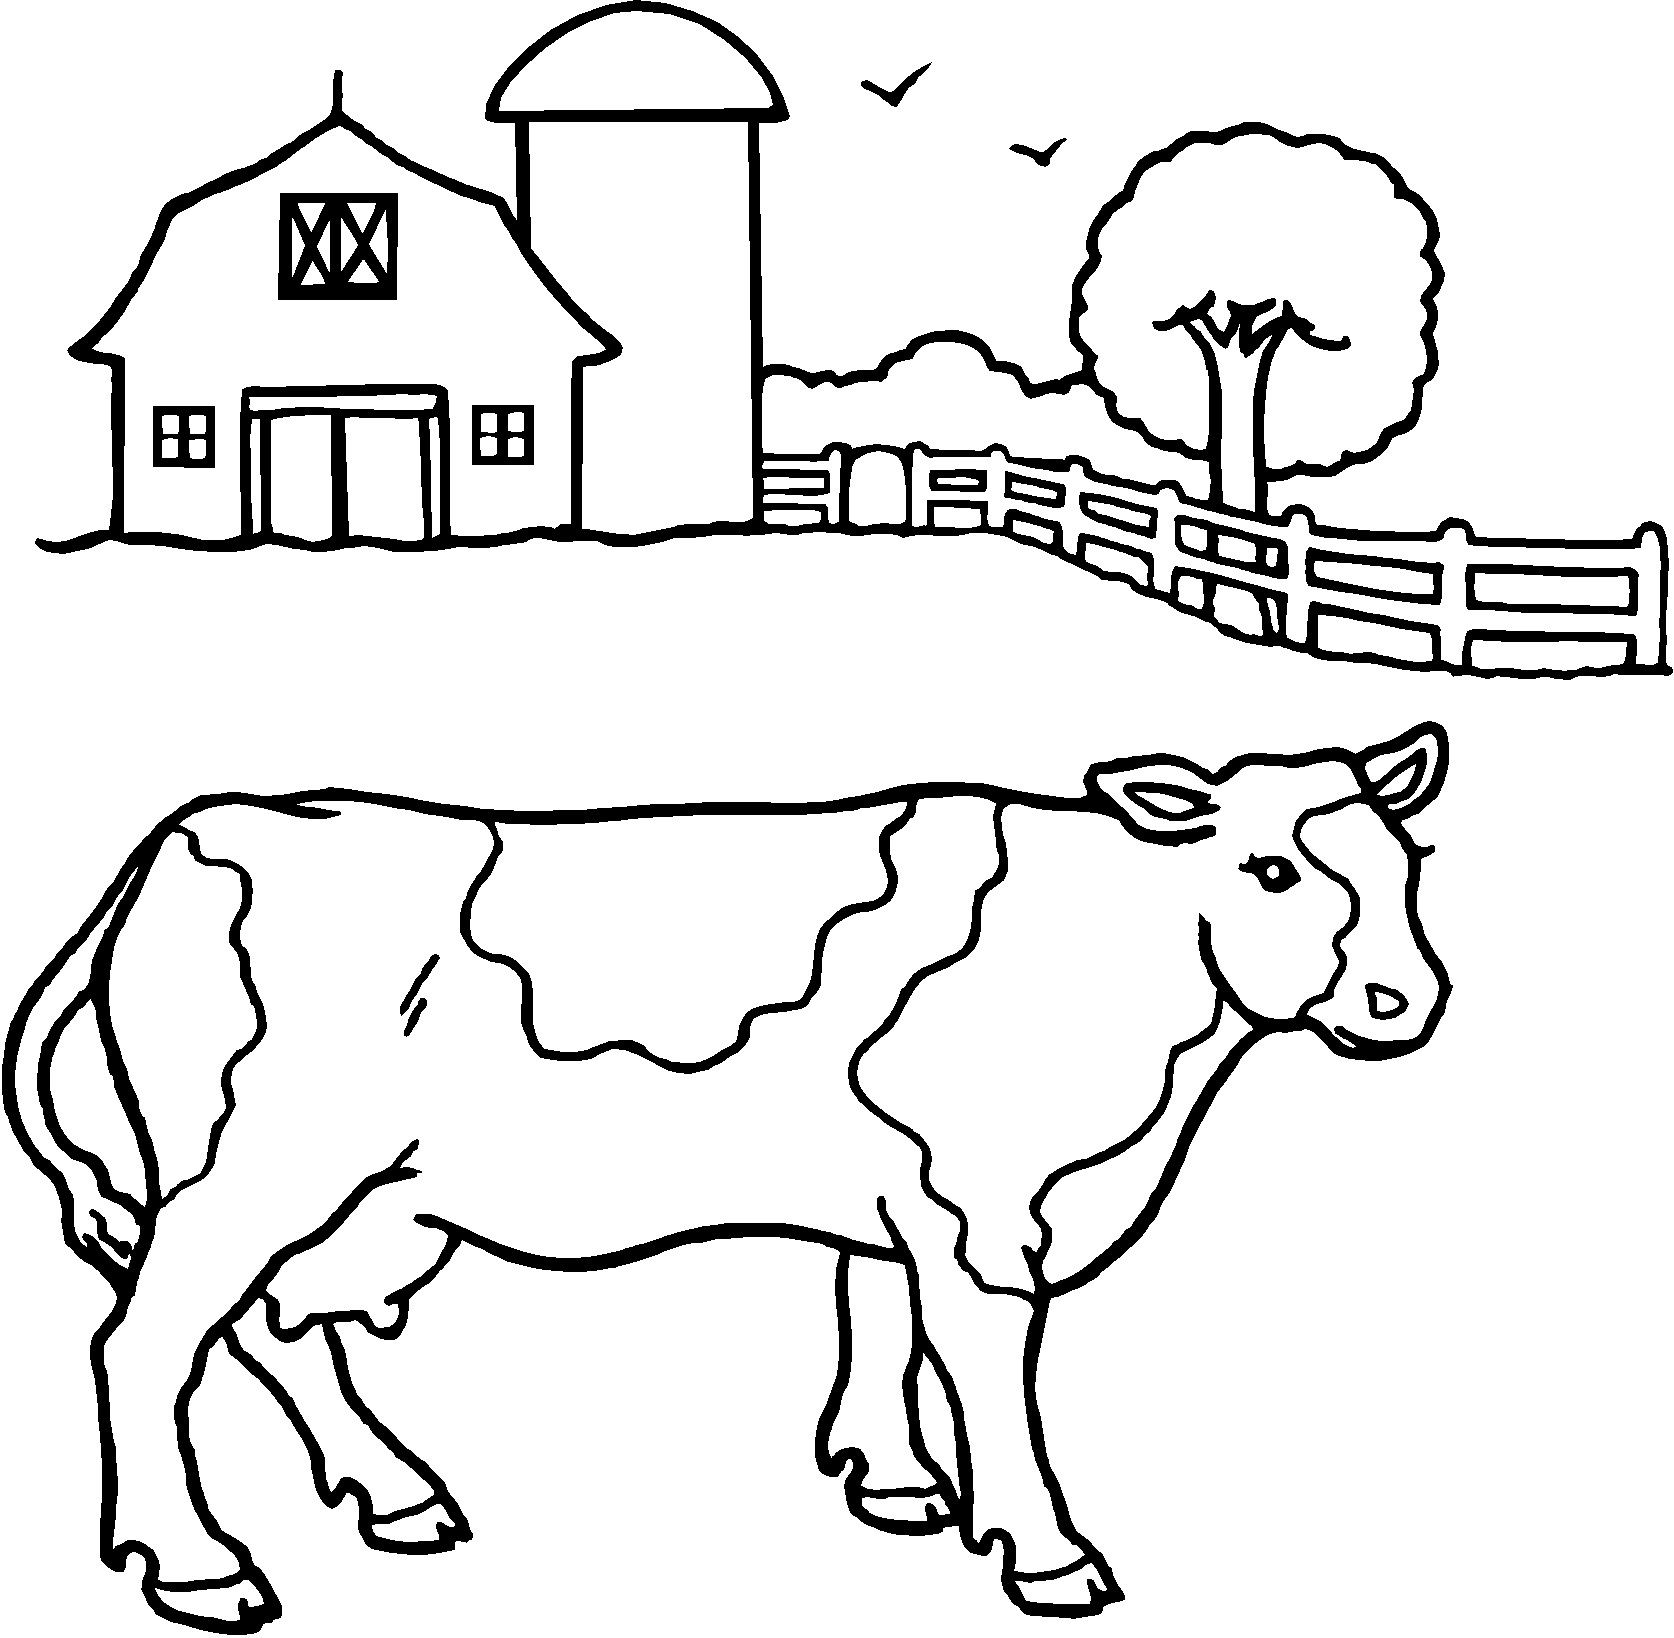 1674x1638 Revealing Cow Colouring S Coloring Printable In Good Print